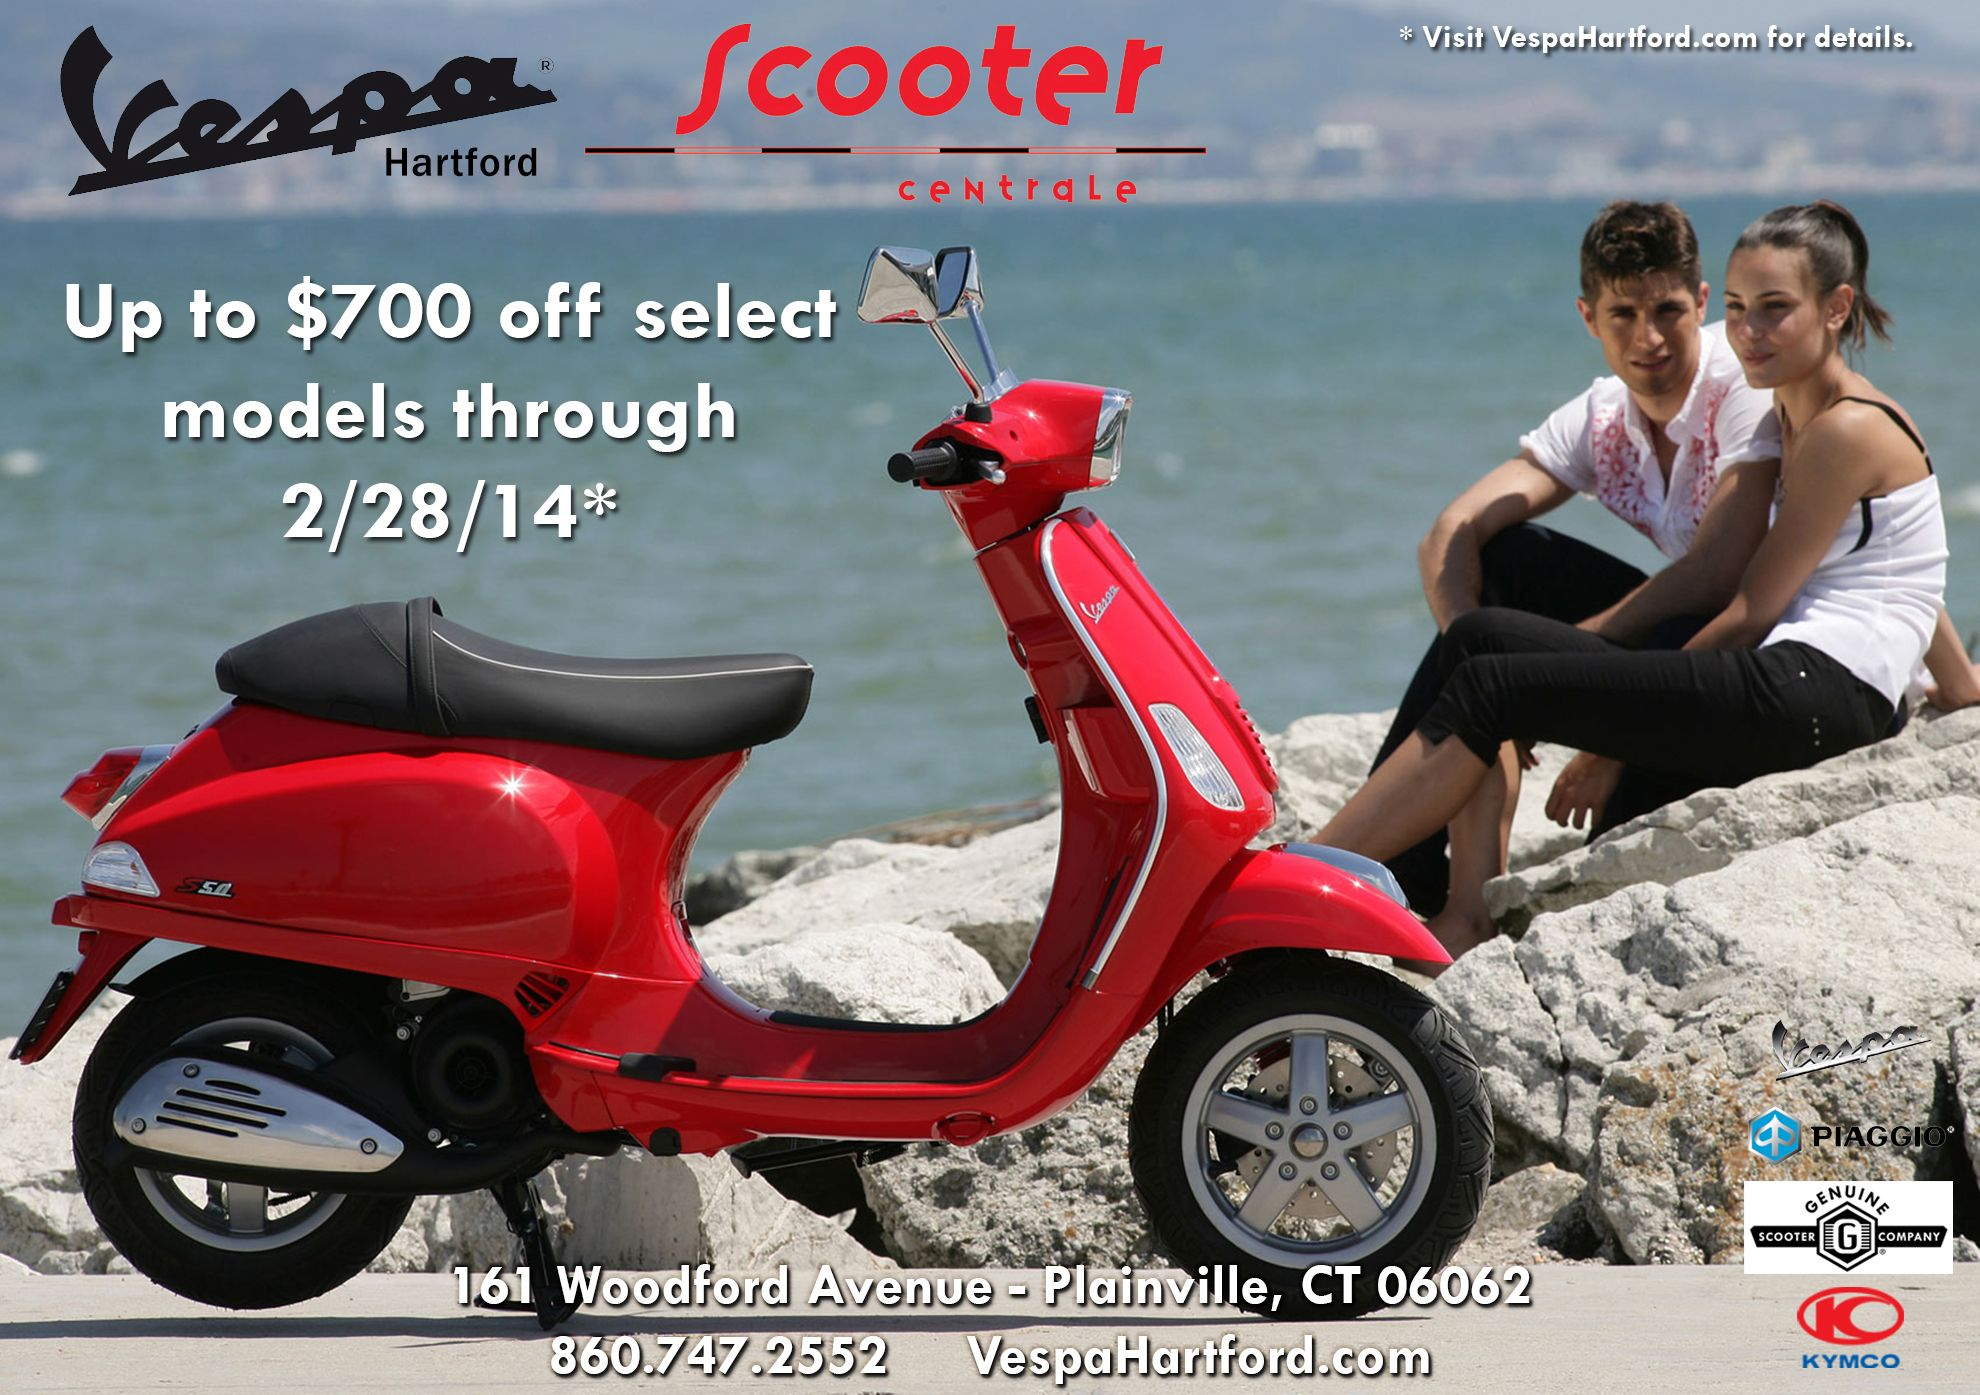 52 Best Specials & Offers from Vespa Hartford images in 2016